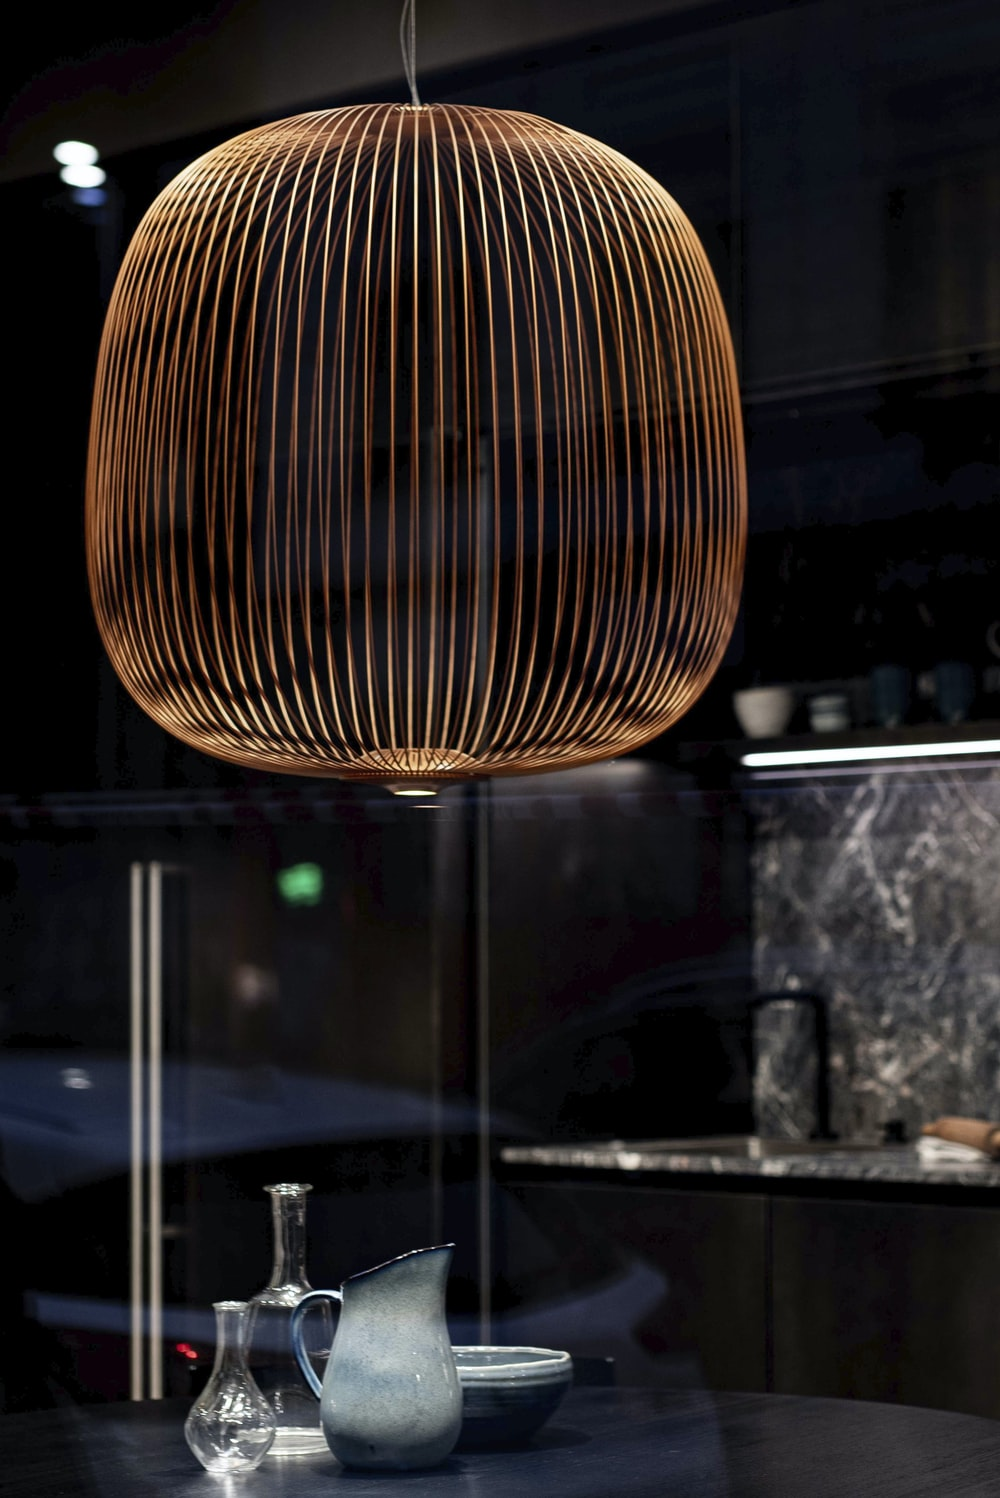 brown round pendant lamp turned on in room